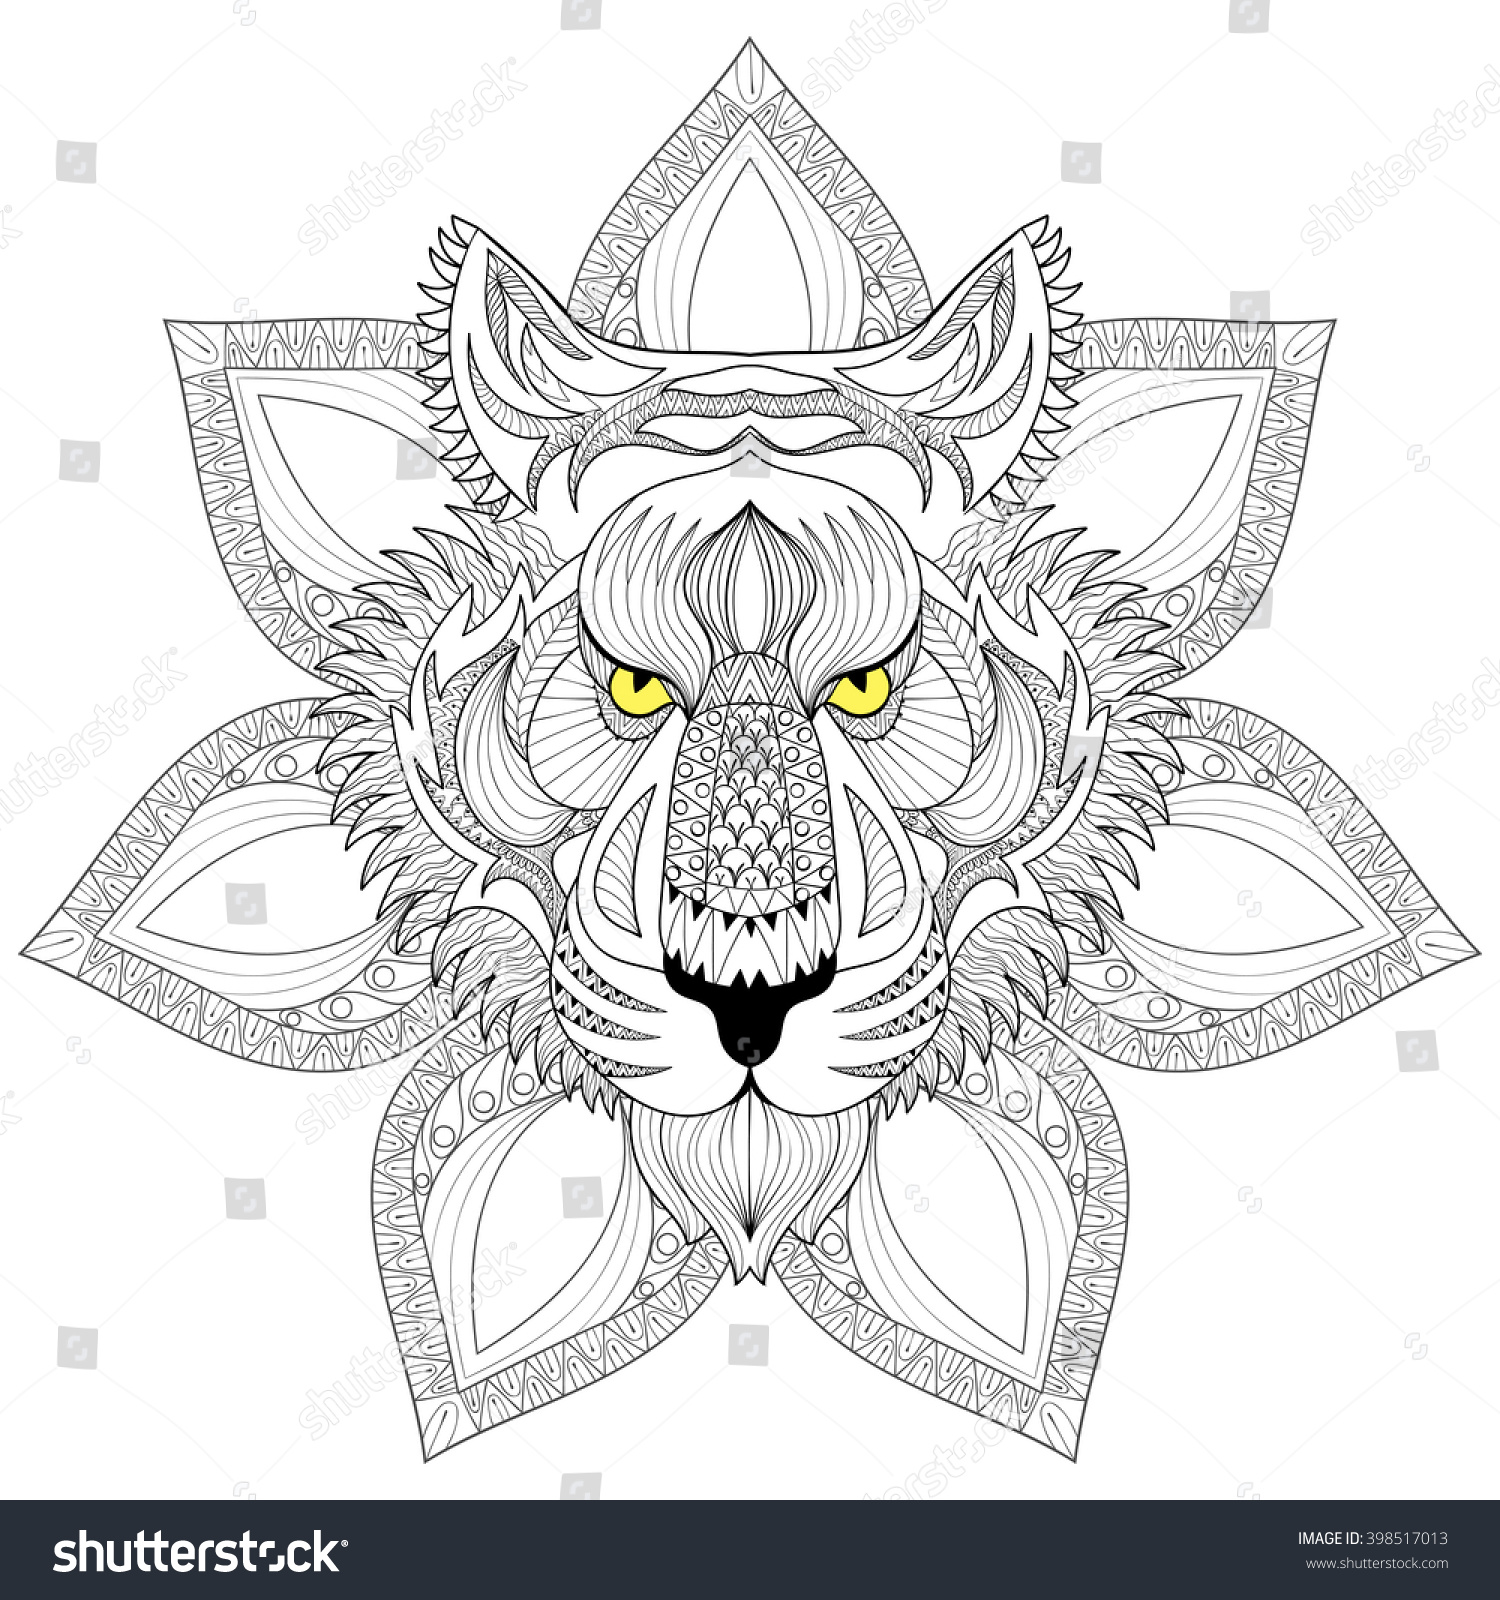 Vector Tigers Face Isolated On Henna Mandala Zentangle Patterned Background For Adult Coloring Pages